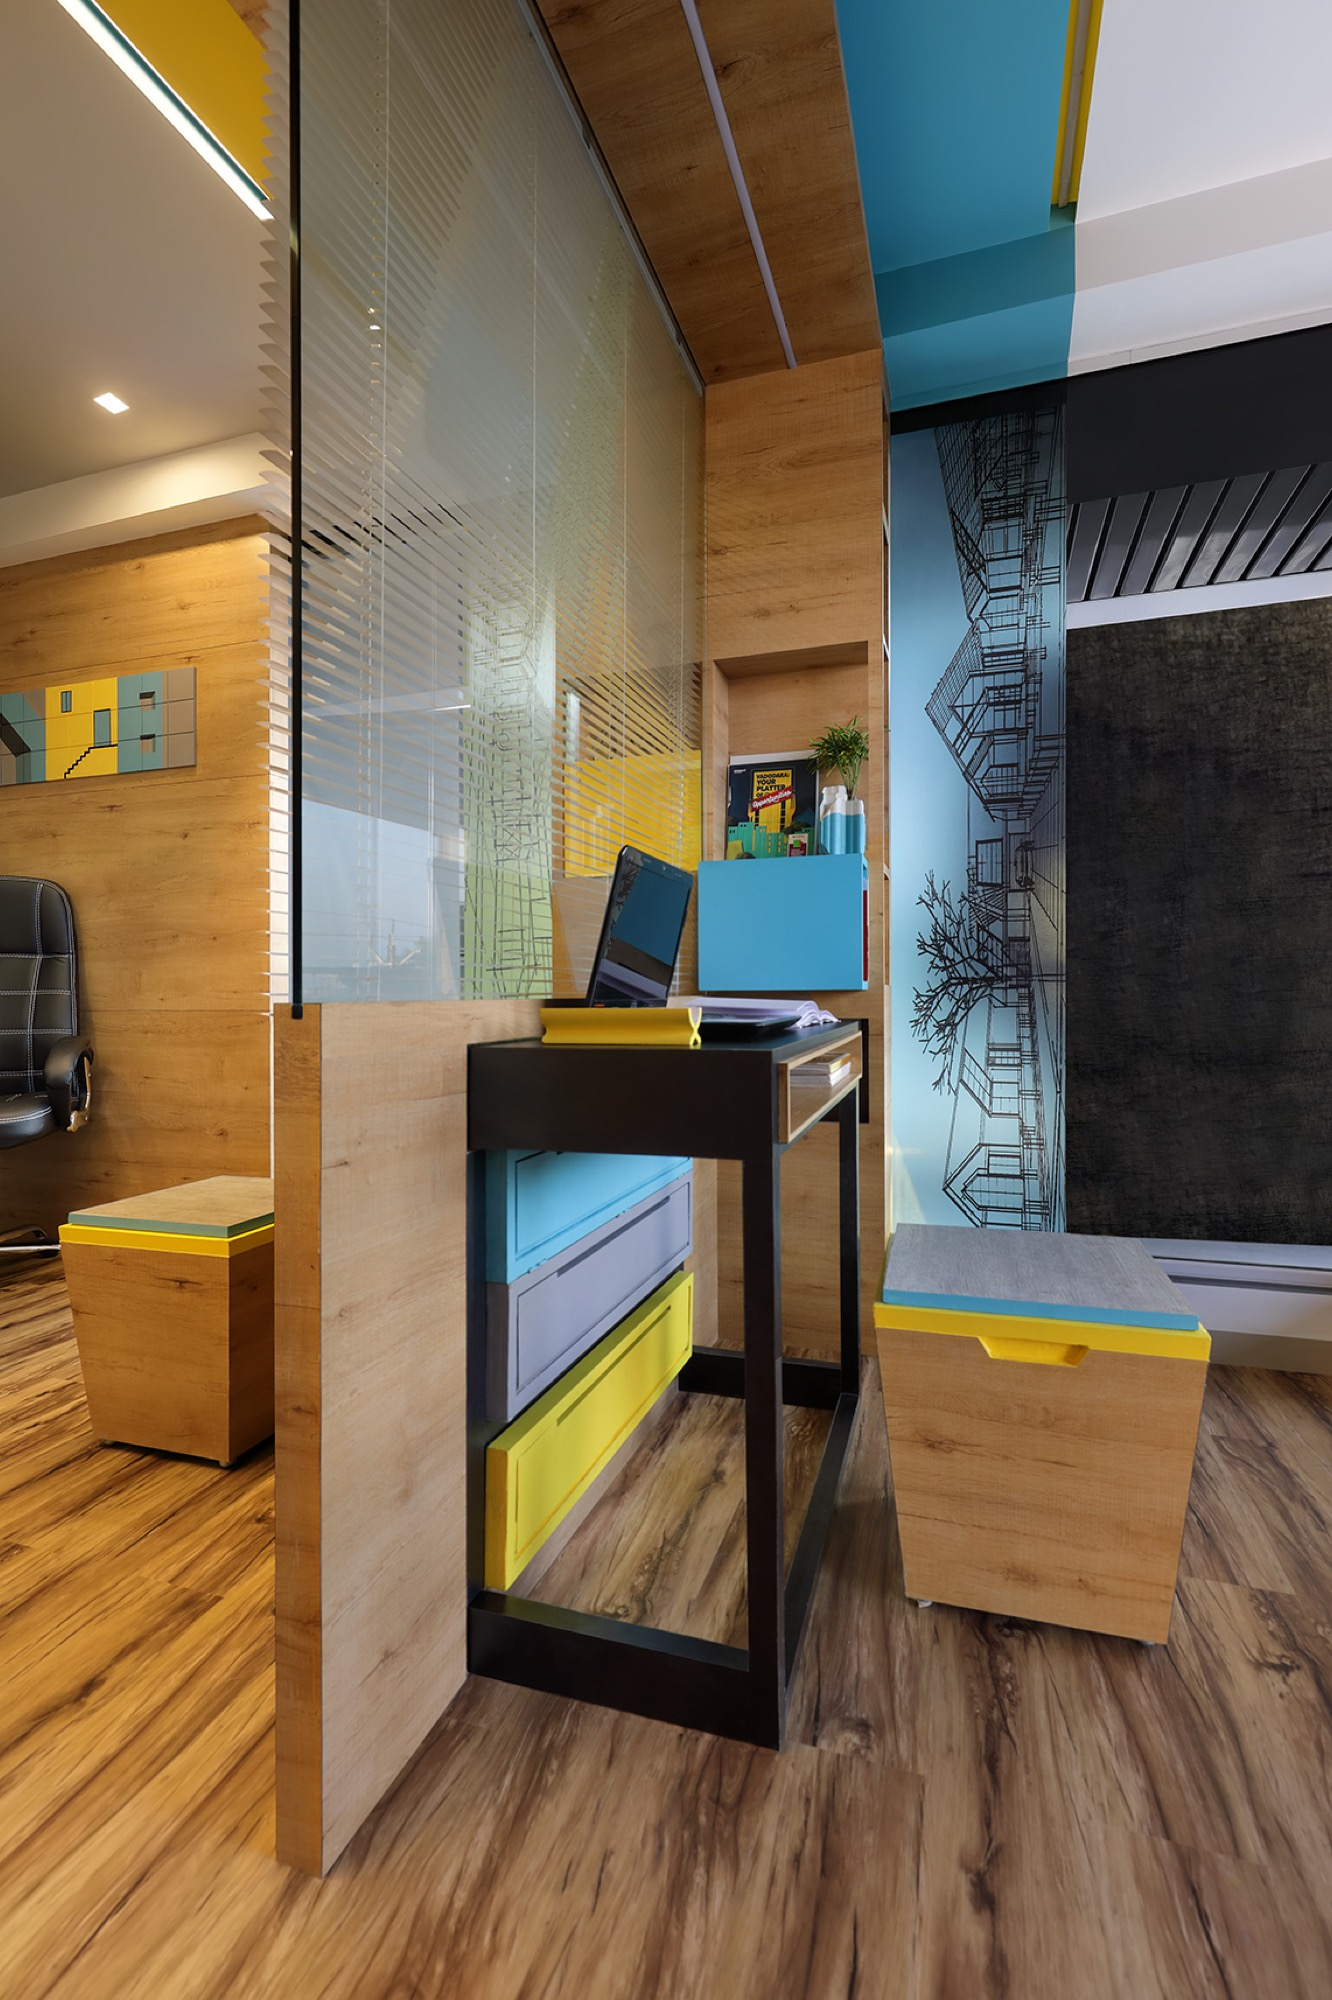 Adaptable furniture that defines the office space, designed by Manoj patel Design Studio 1